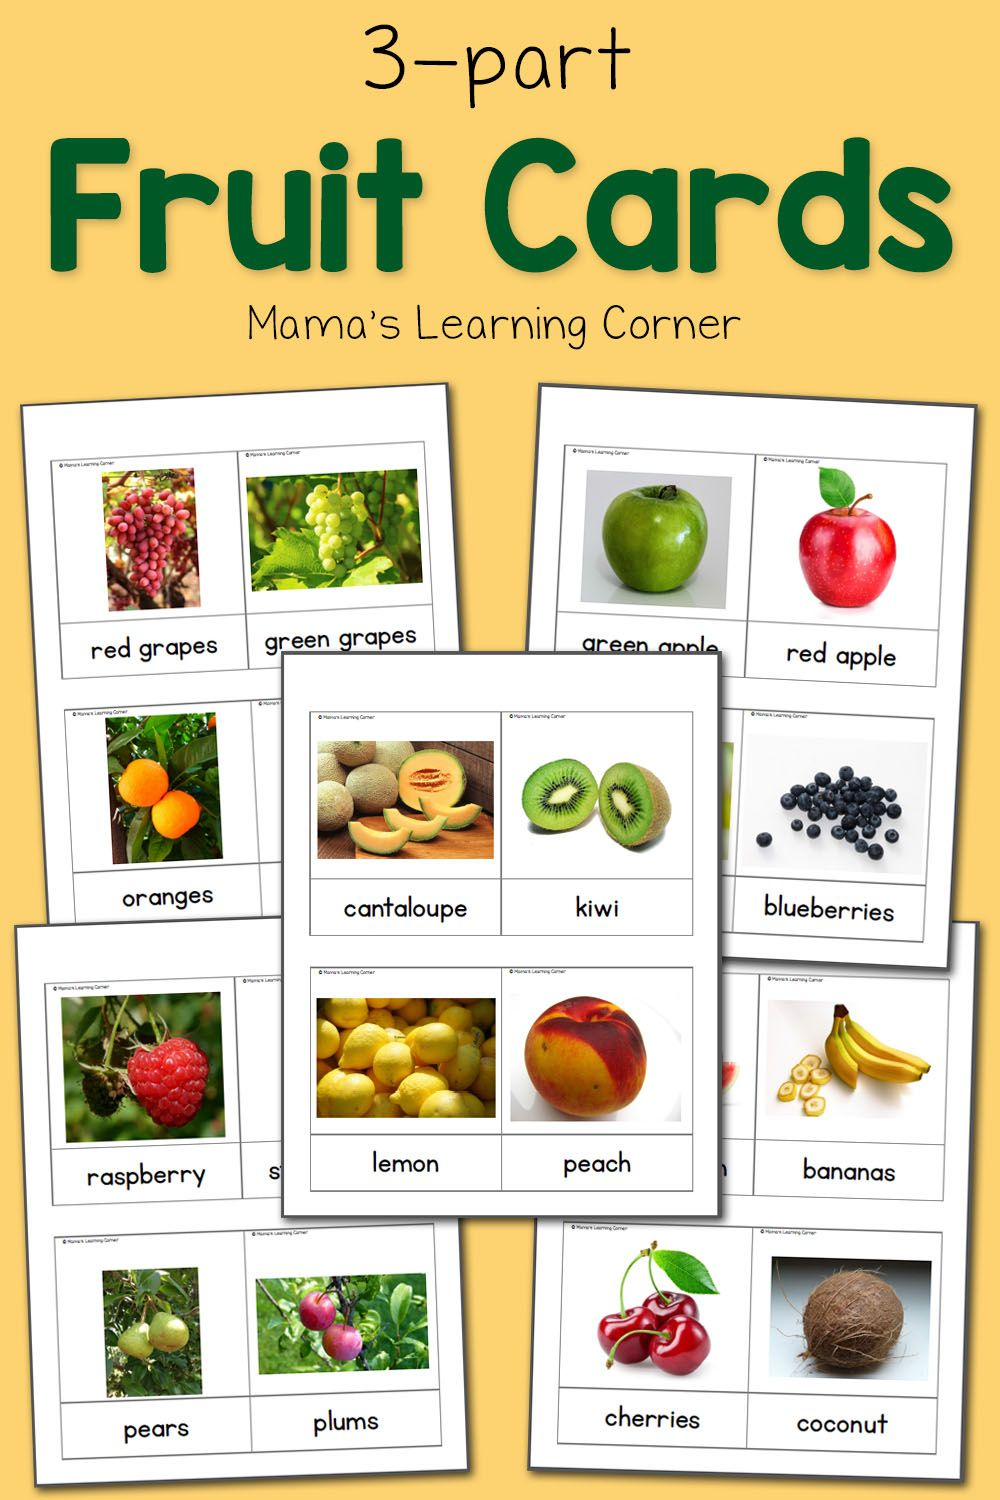 Fruit 3 Part Cards Fruit Fruits And Vegetables Pictures Fruit And Veg [ 1500 x 1000 Pixel ]